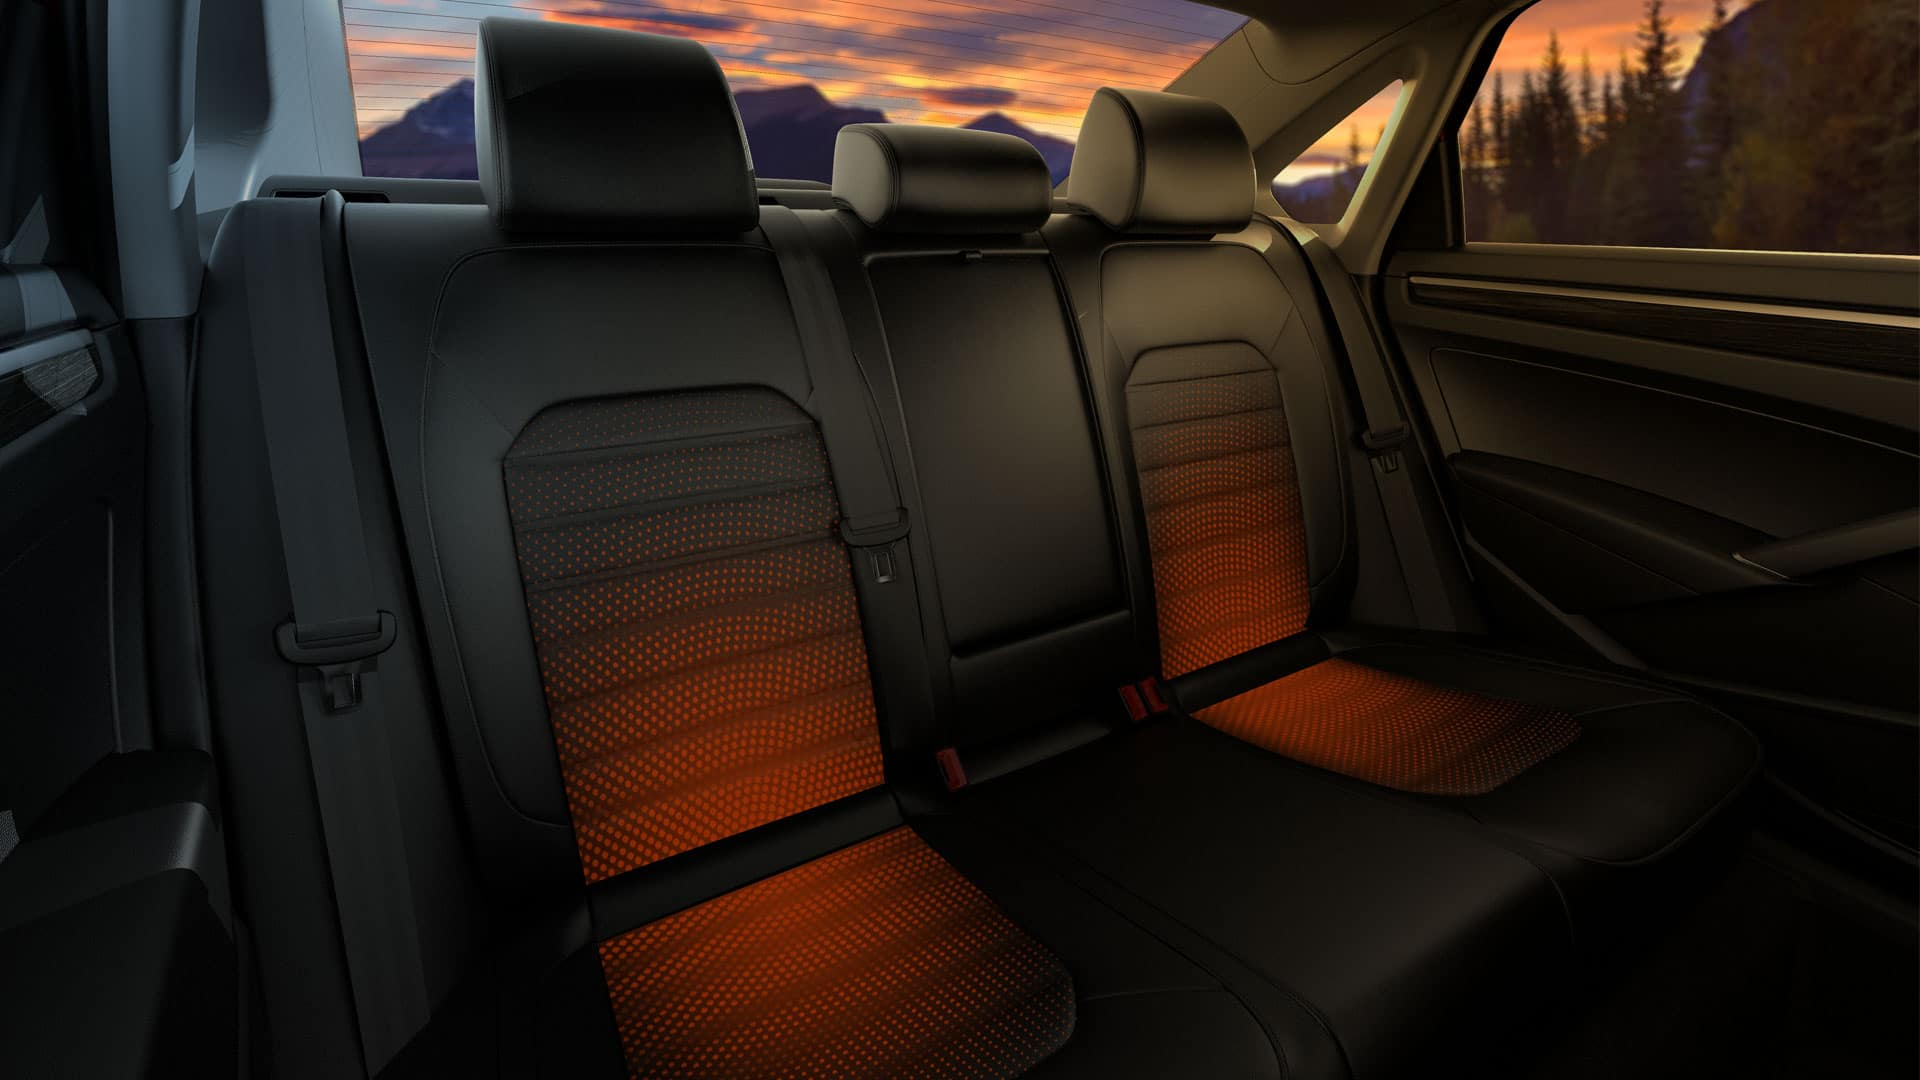 A graphic demonstrating the 2019 VW Passat's heated rear seats